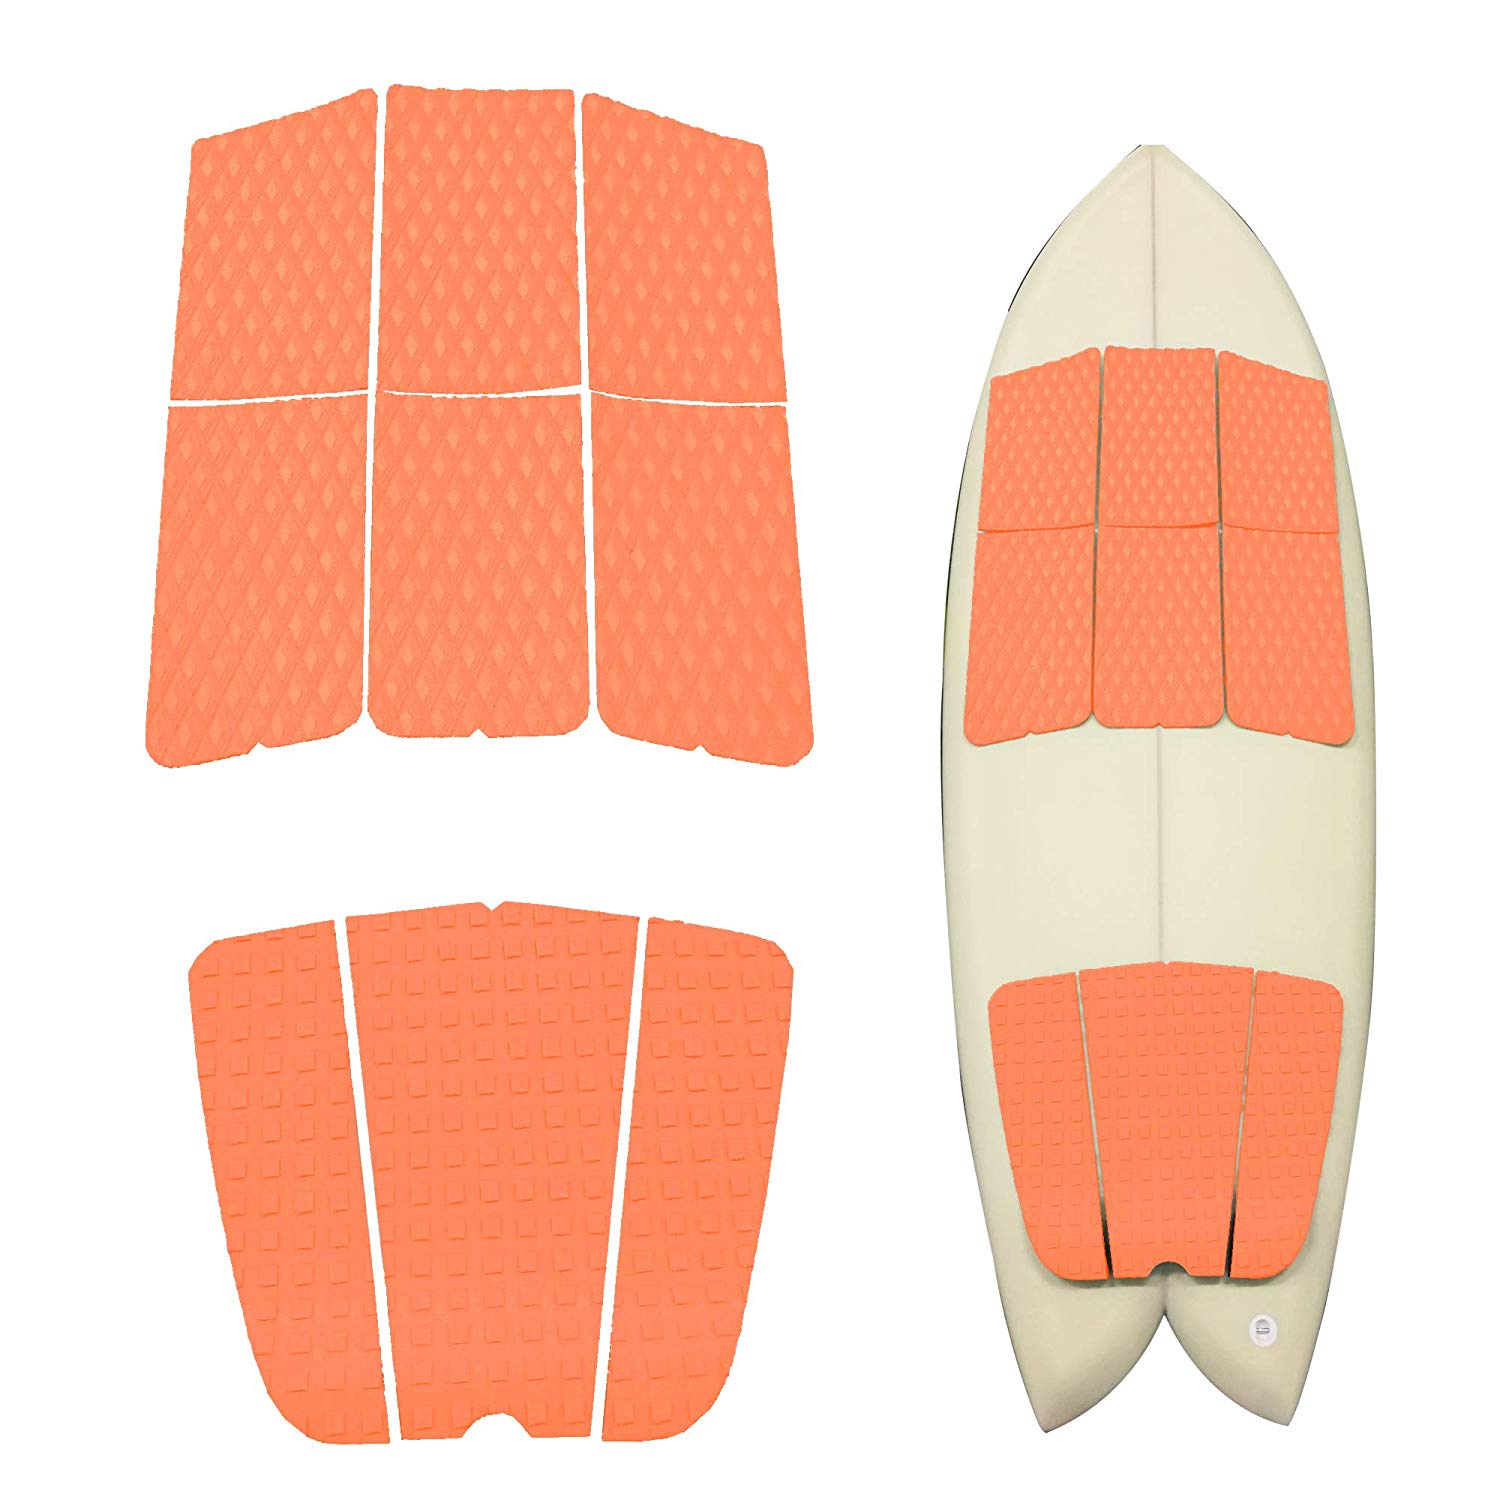 e2009b8ff8 Cheap Deck Pad Surf, find Deck Pad Surf deals on line at Alibaba.com